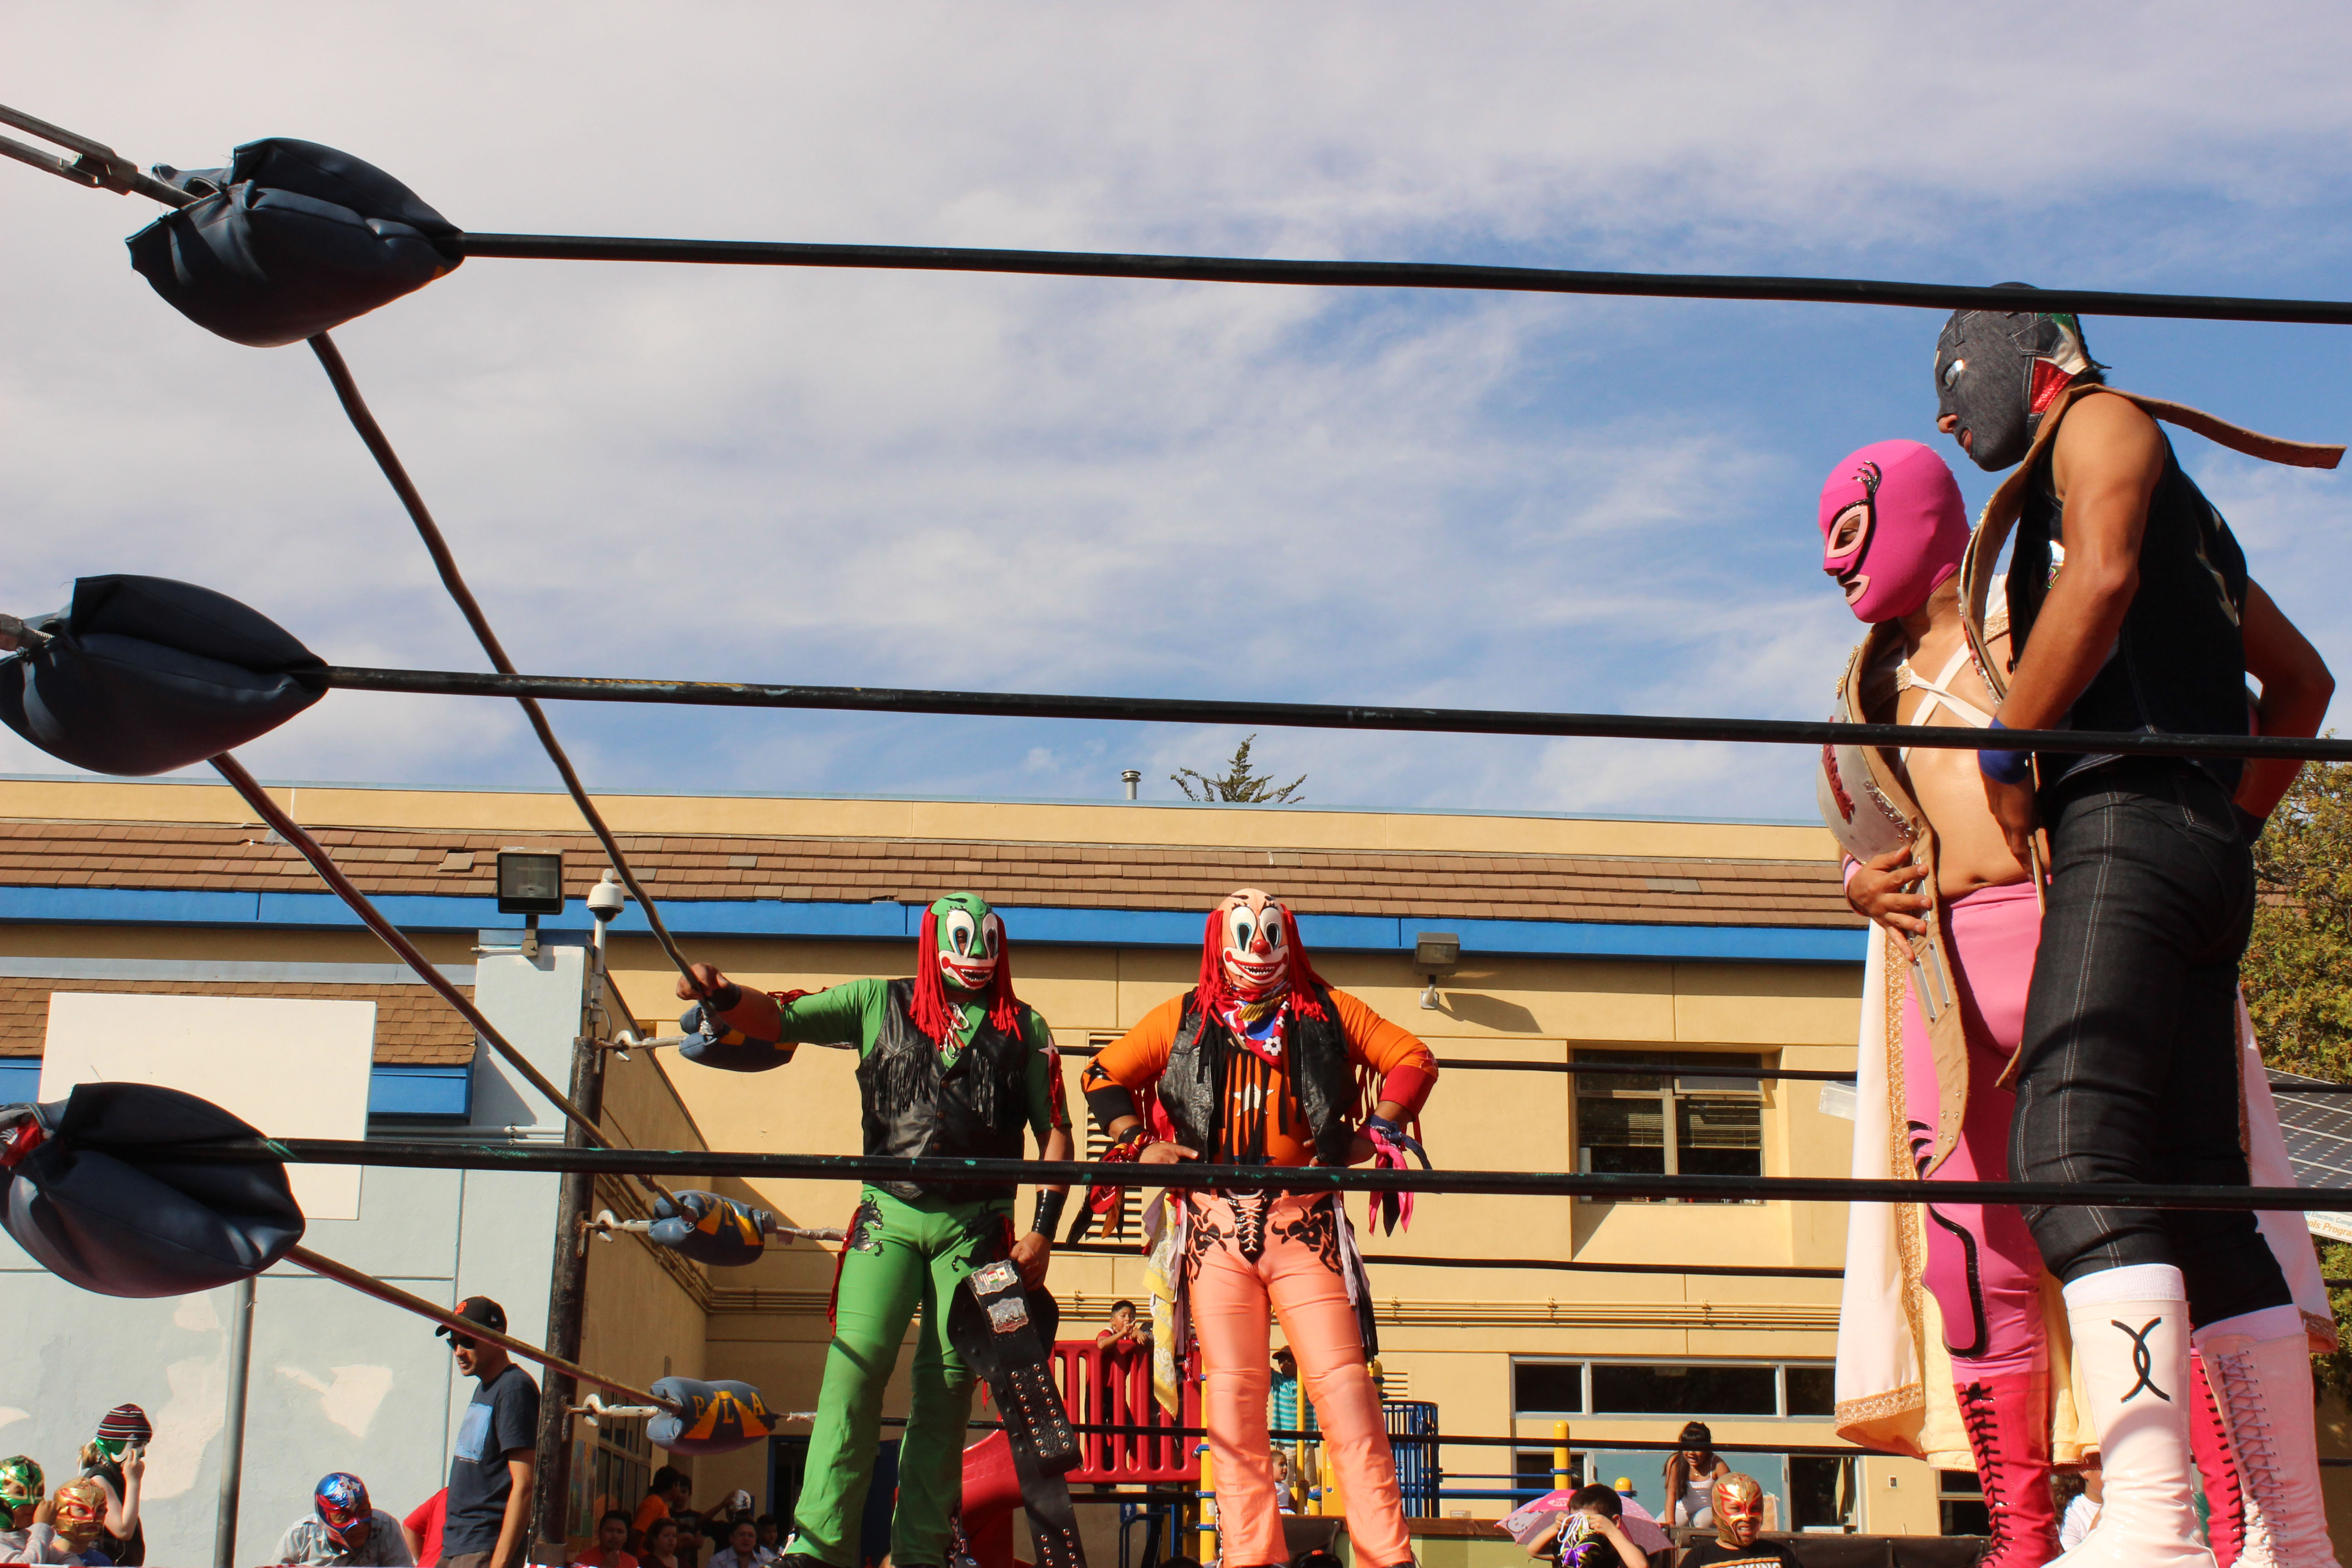 VIDEO: Mexican wrestlers hit the mats for Mission school